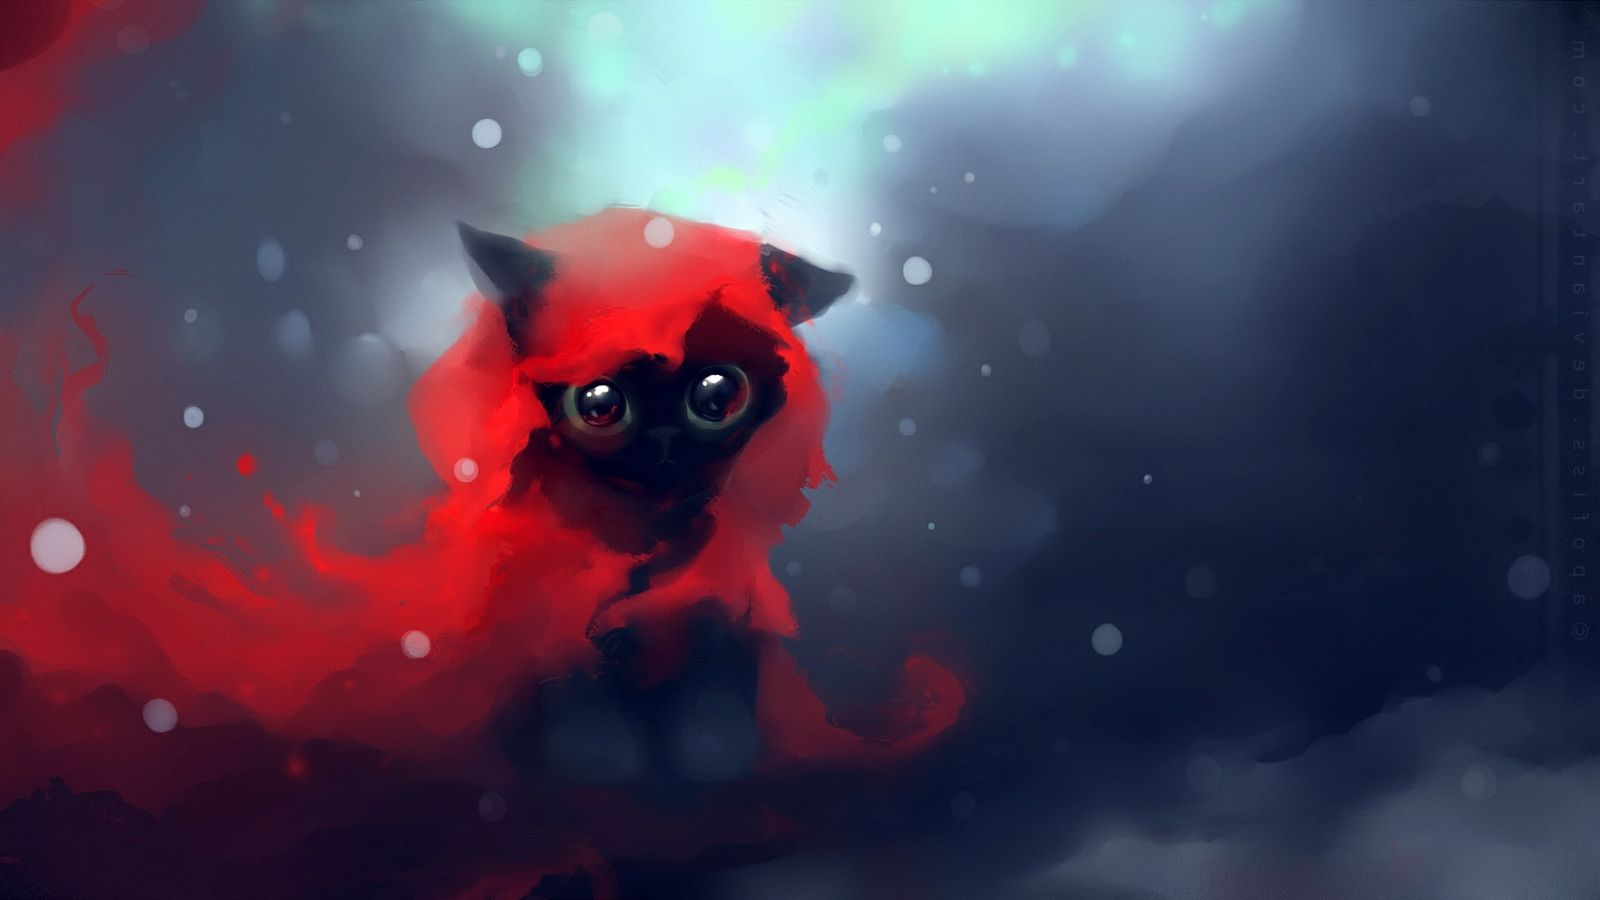 Red Cat Wallpaper Little Red Riding Hood Cat 122121 Hd